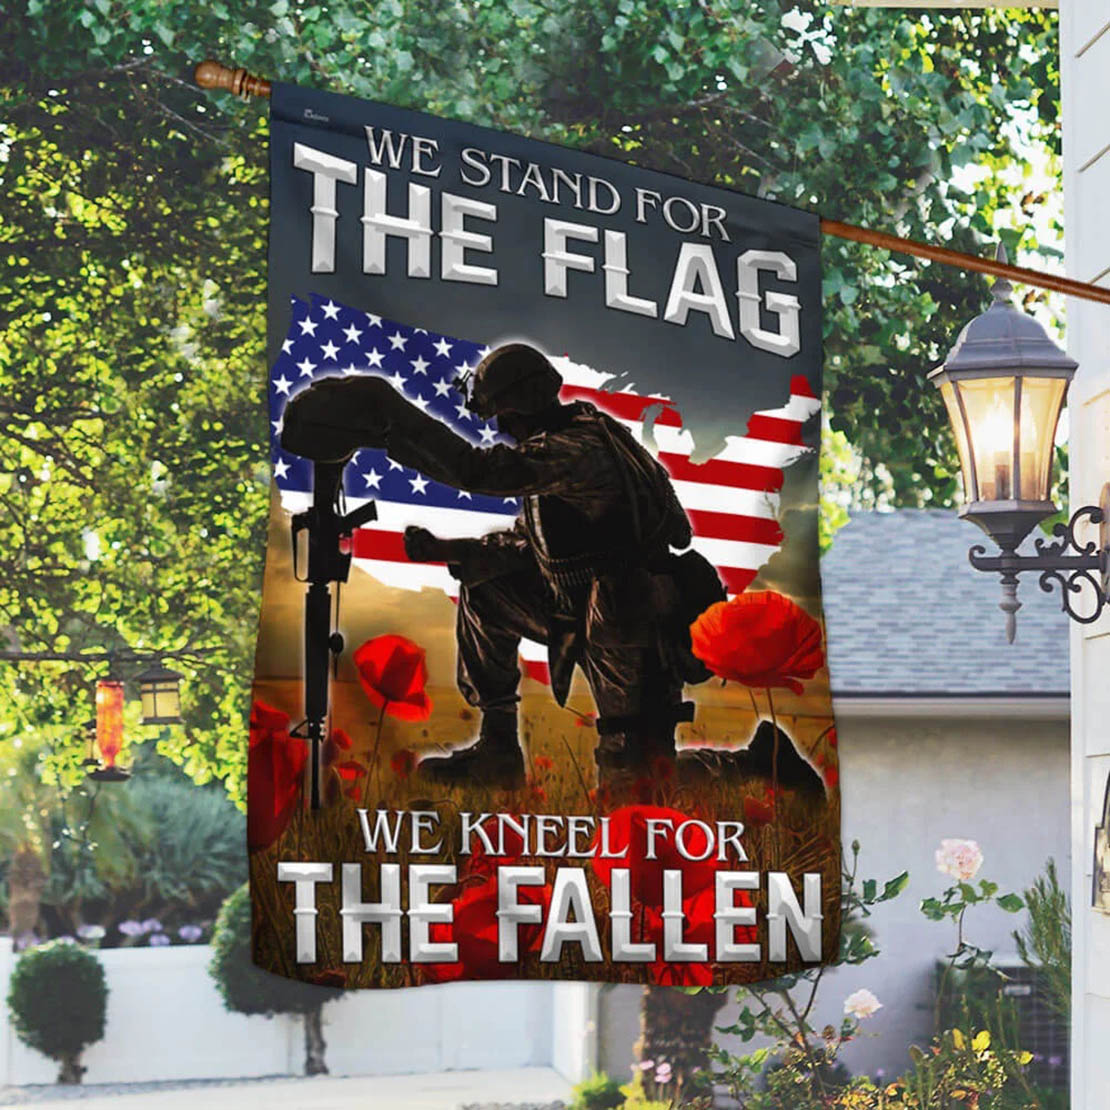 Remembrance day Flag We kneel for the fallen American flag - Picture 2